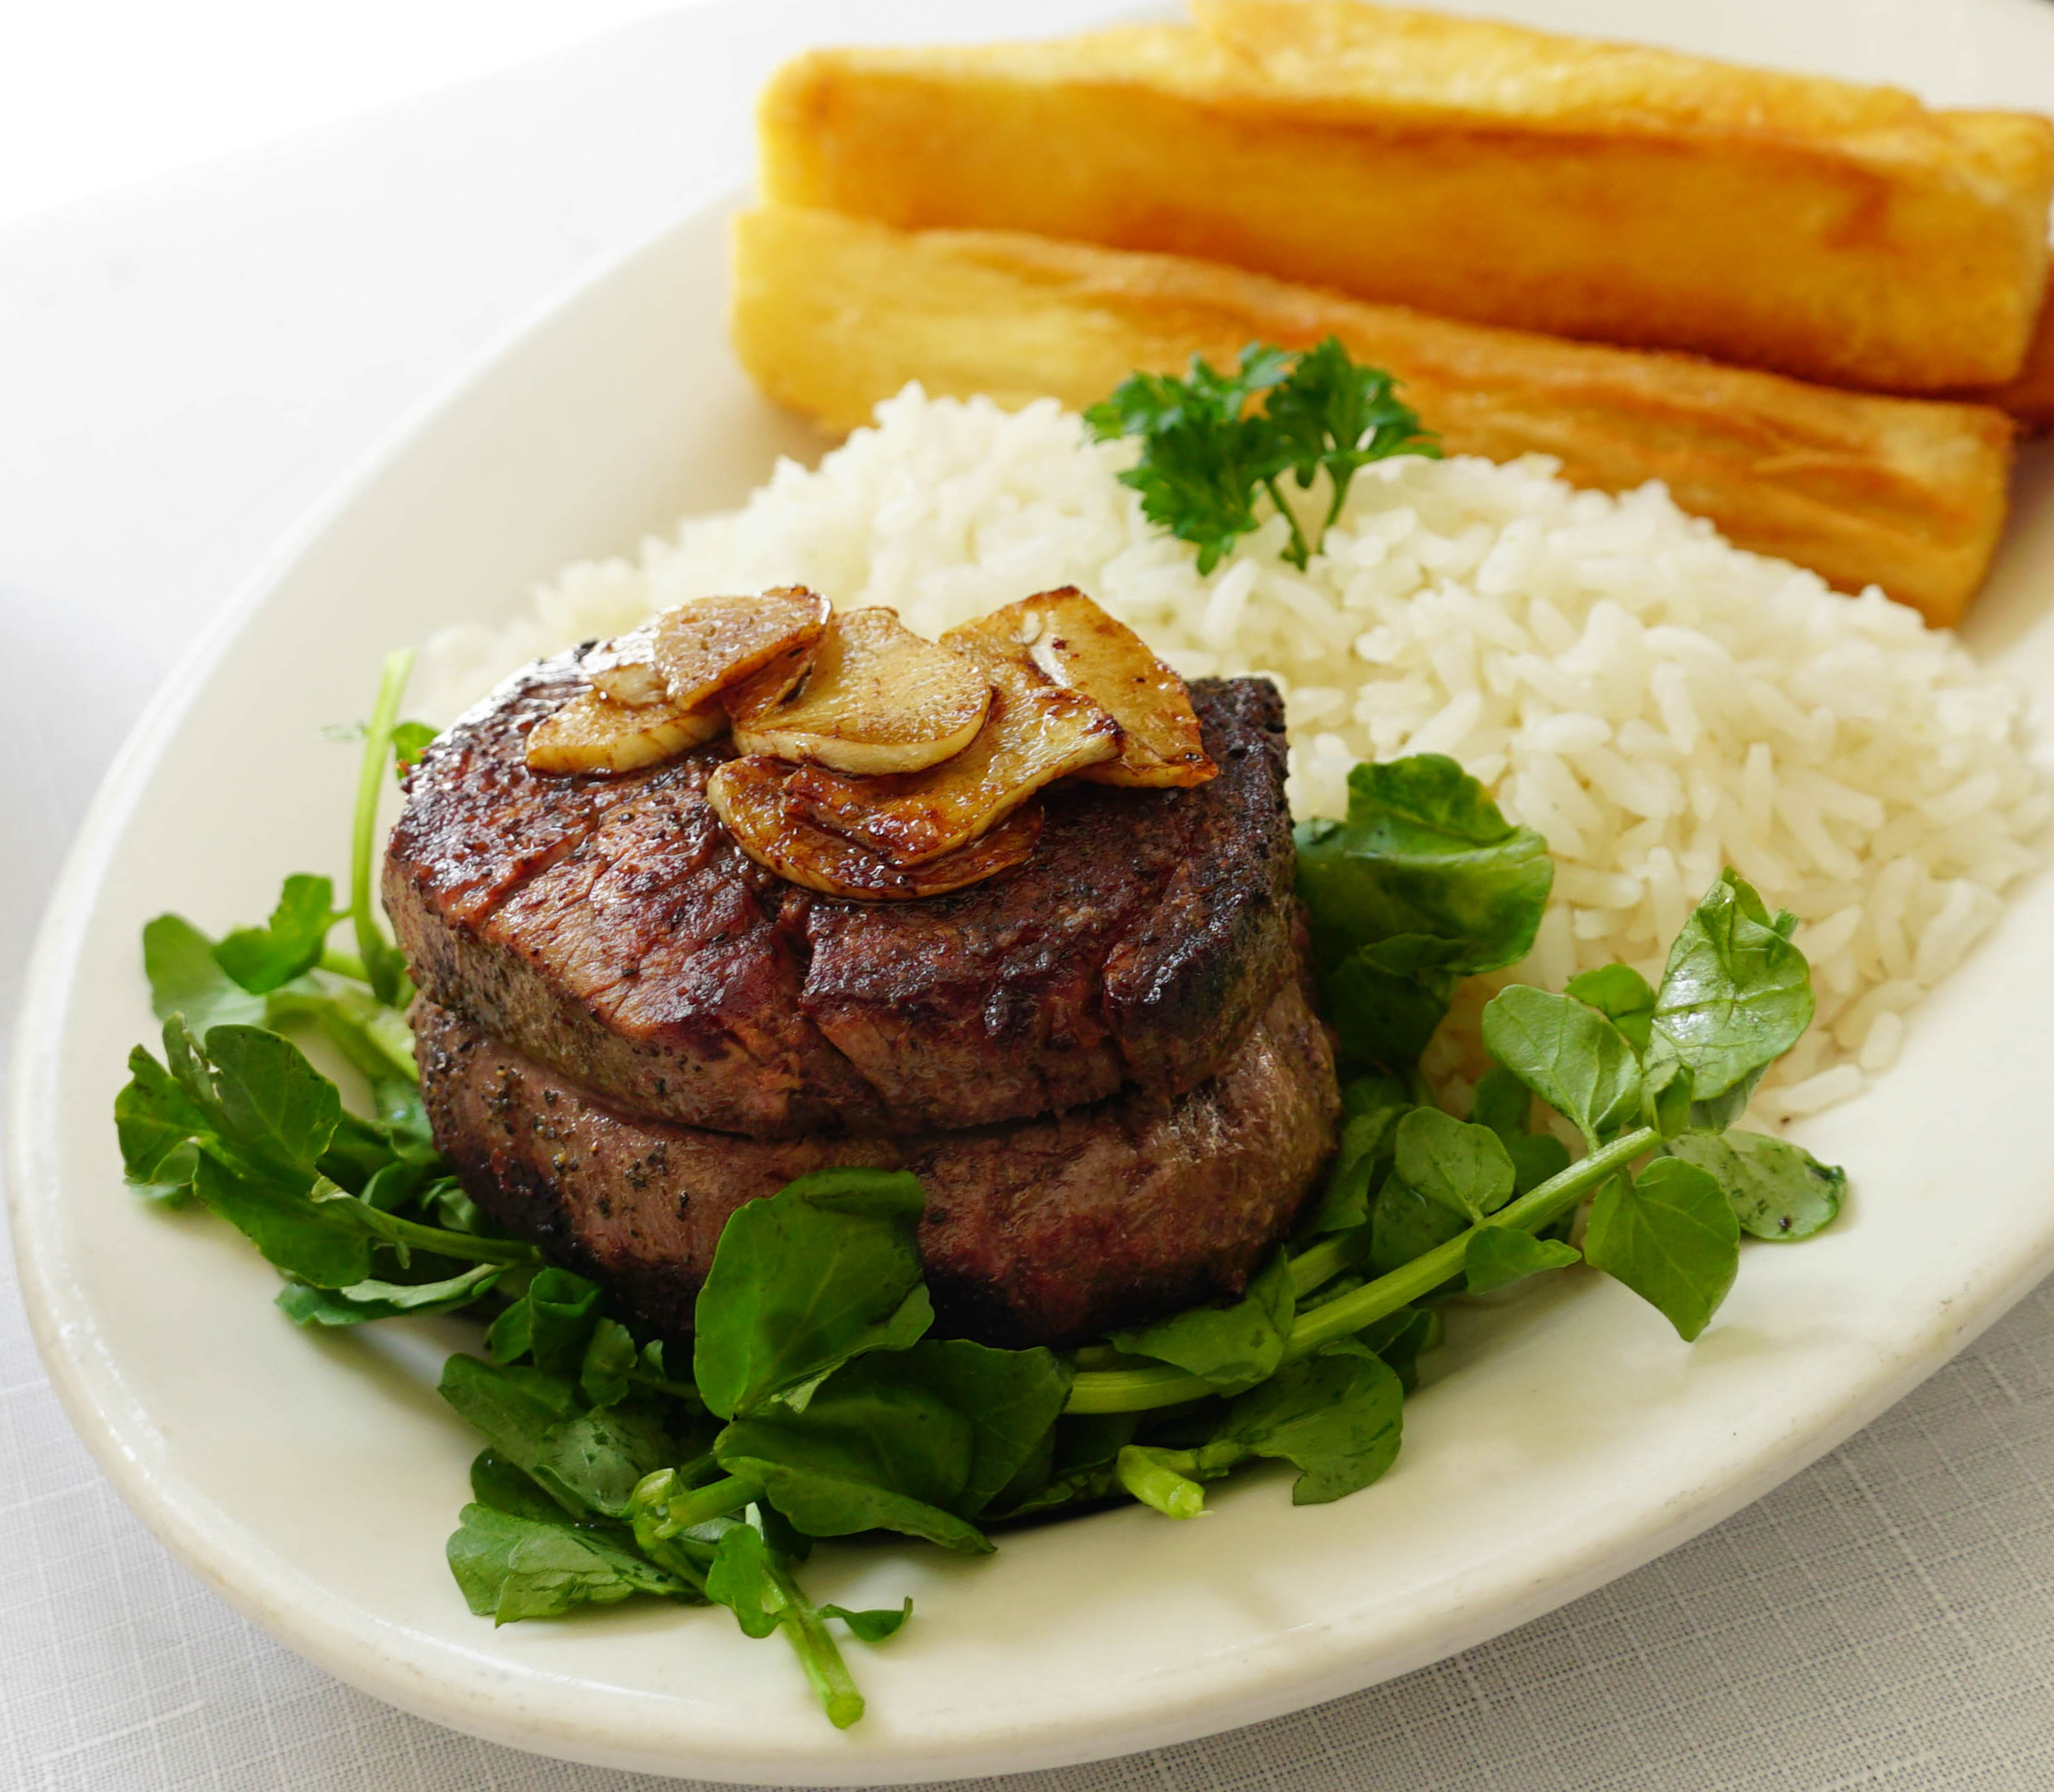 Steak, rice, and yuca fries plated on a white dish